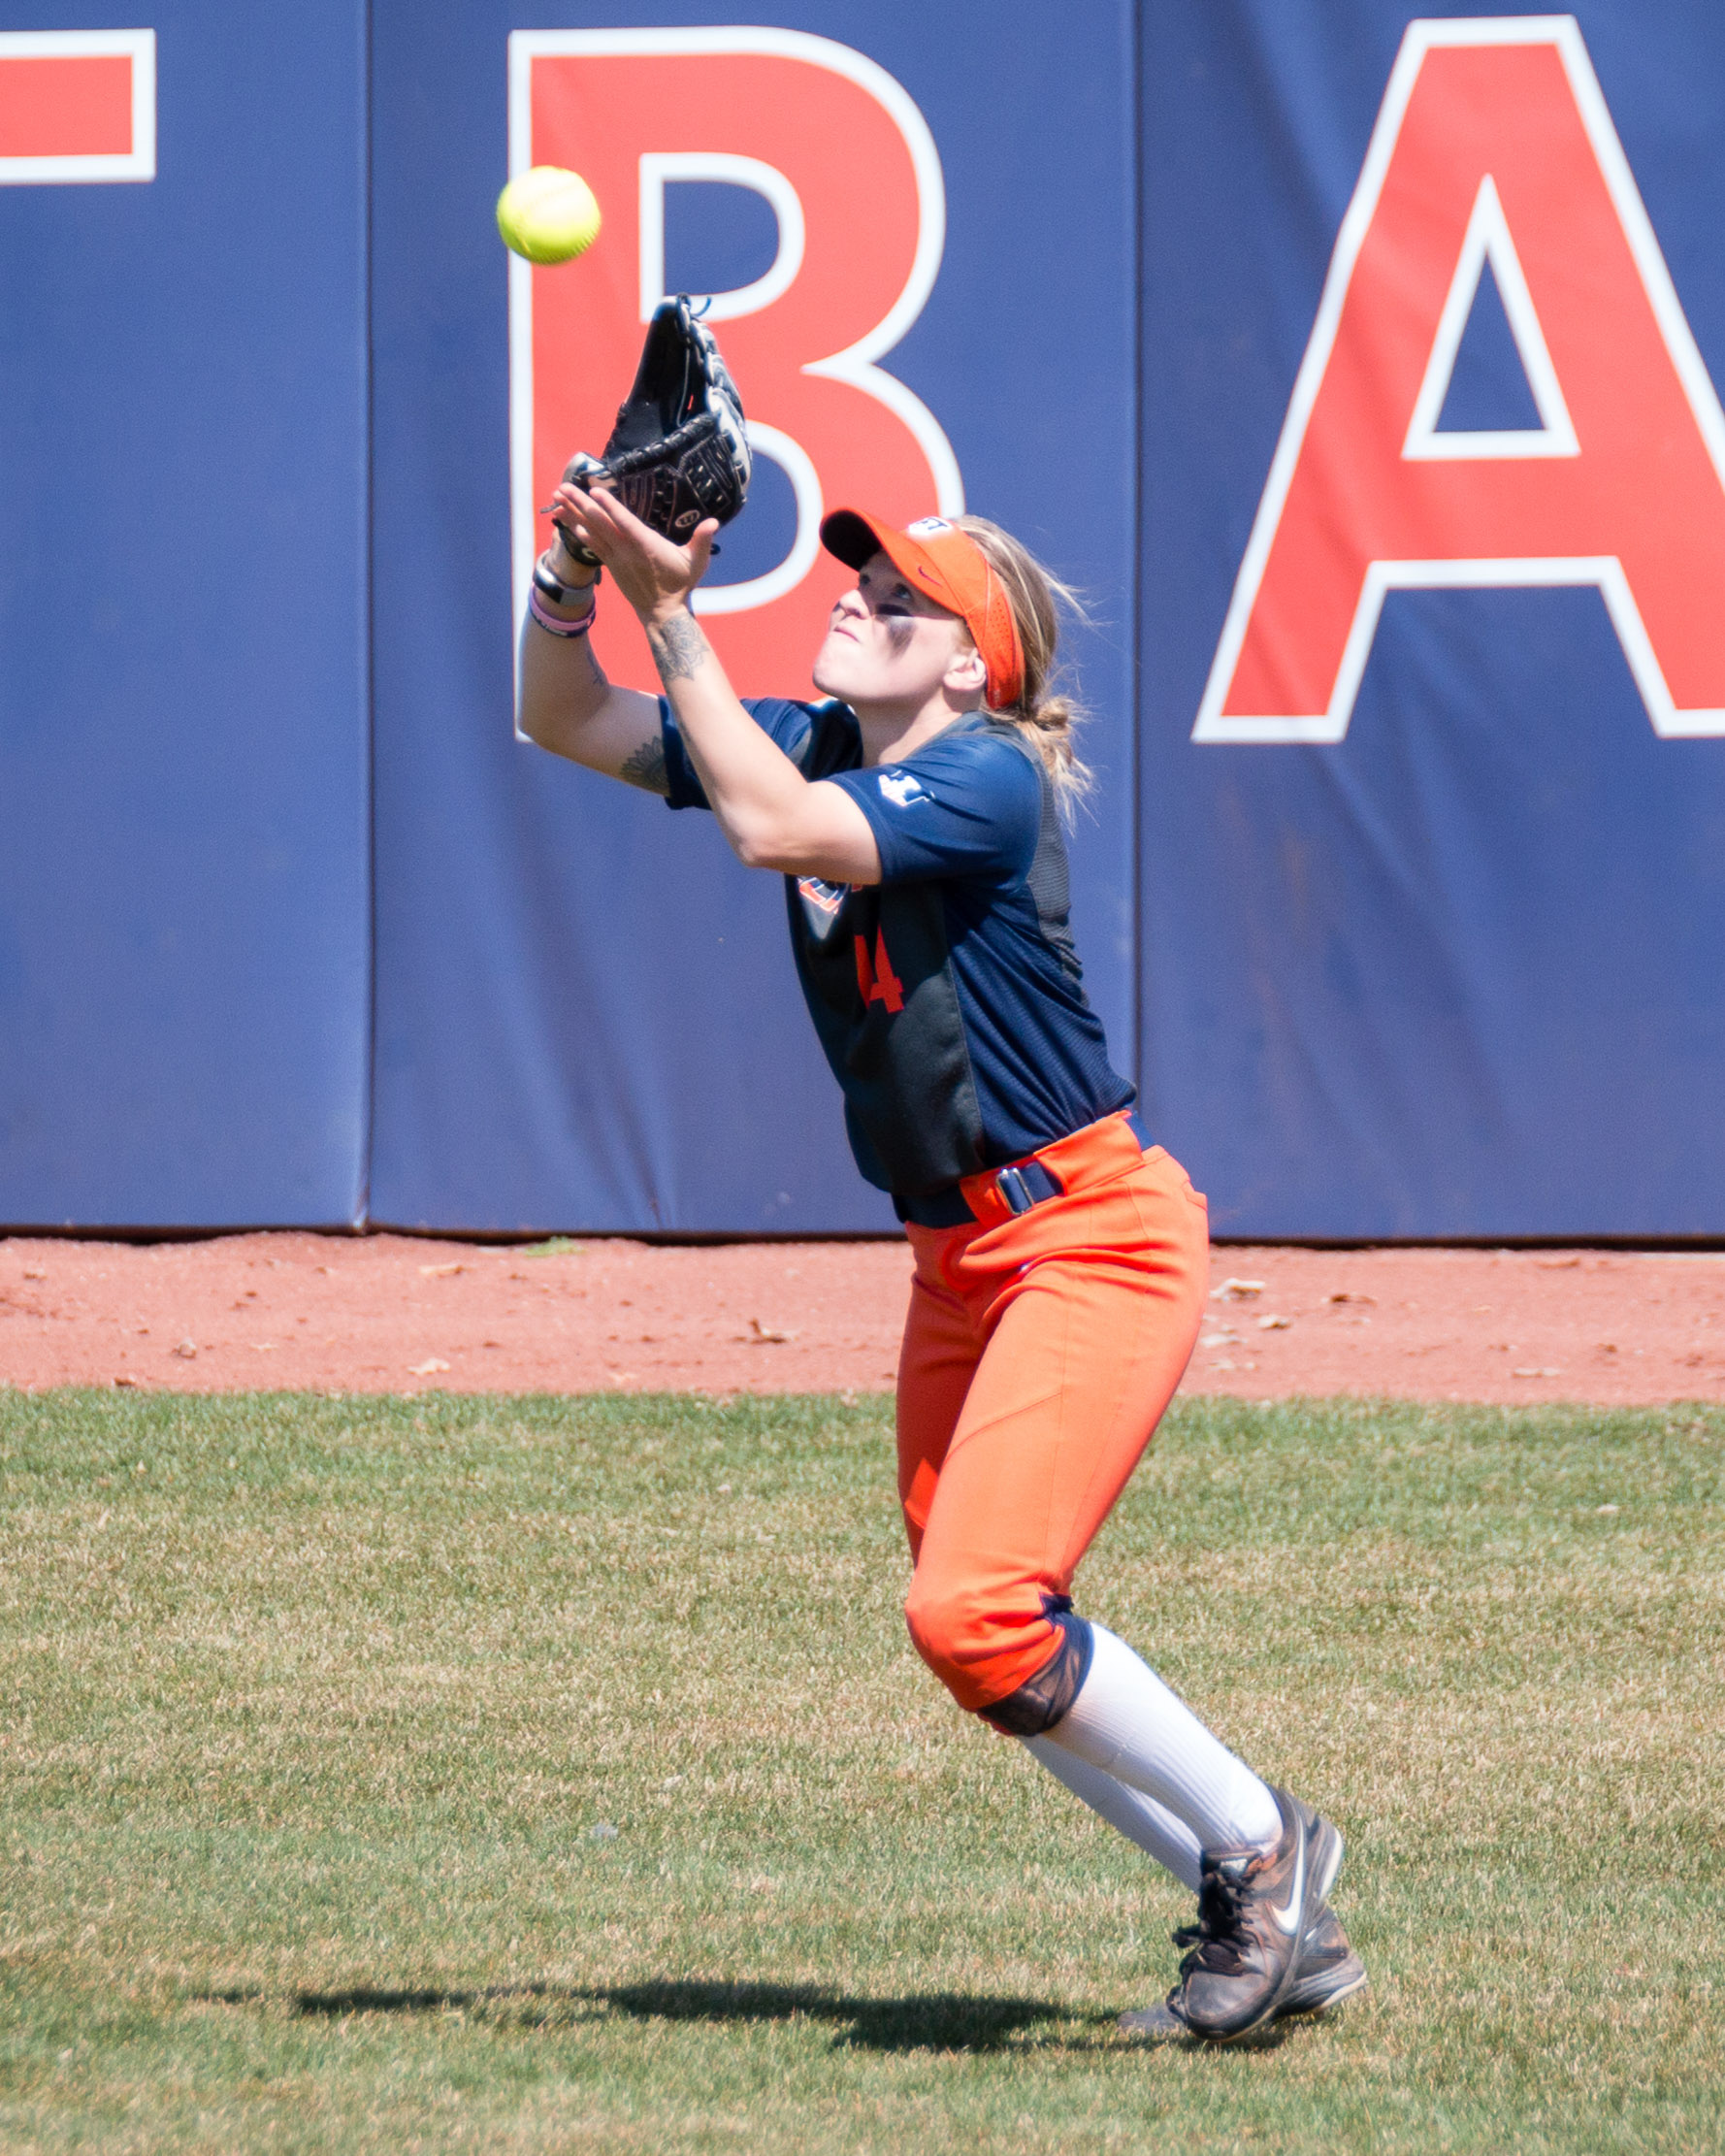 Illinois softball loses last nonconference game | The ...